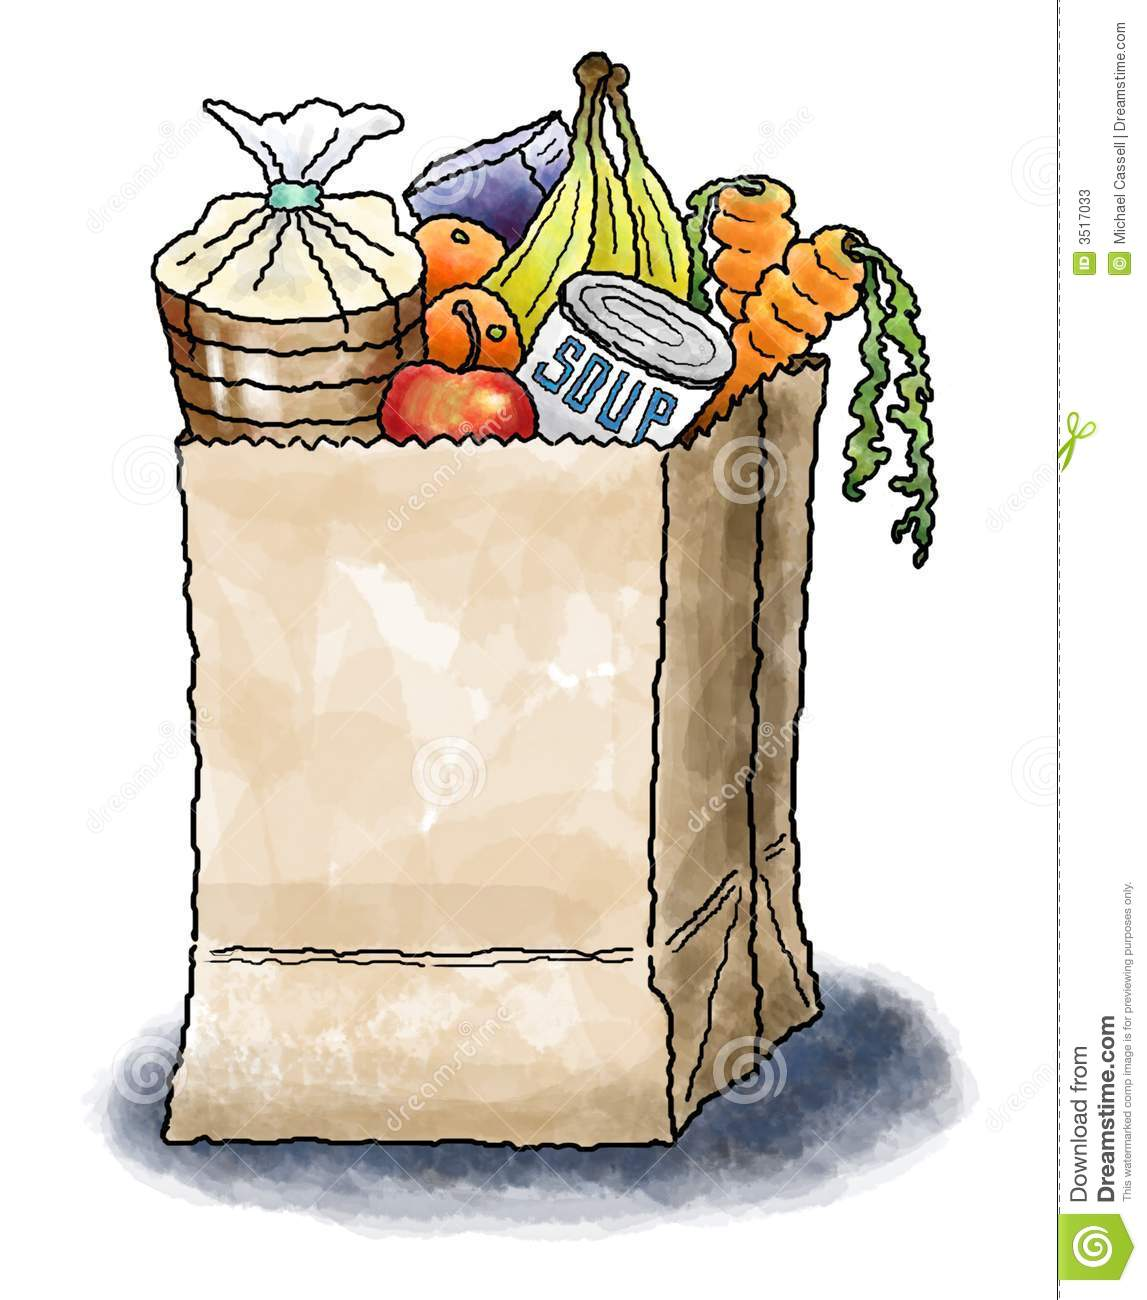 Displaying (20) Gallery Images For Grocery Bag Clip Art...